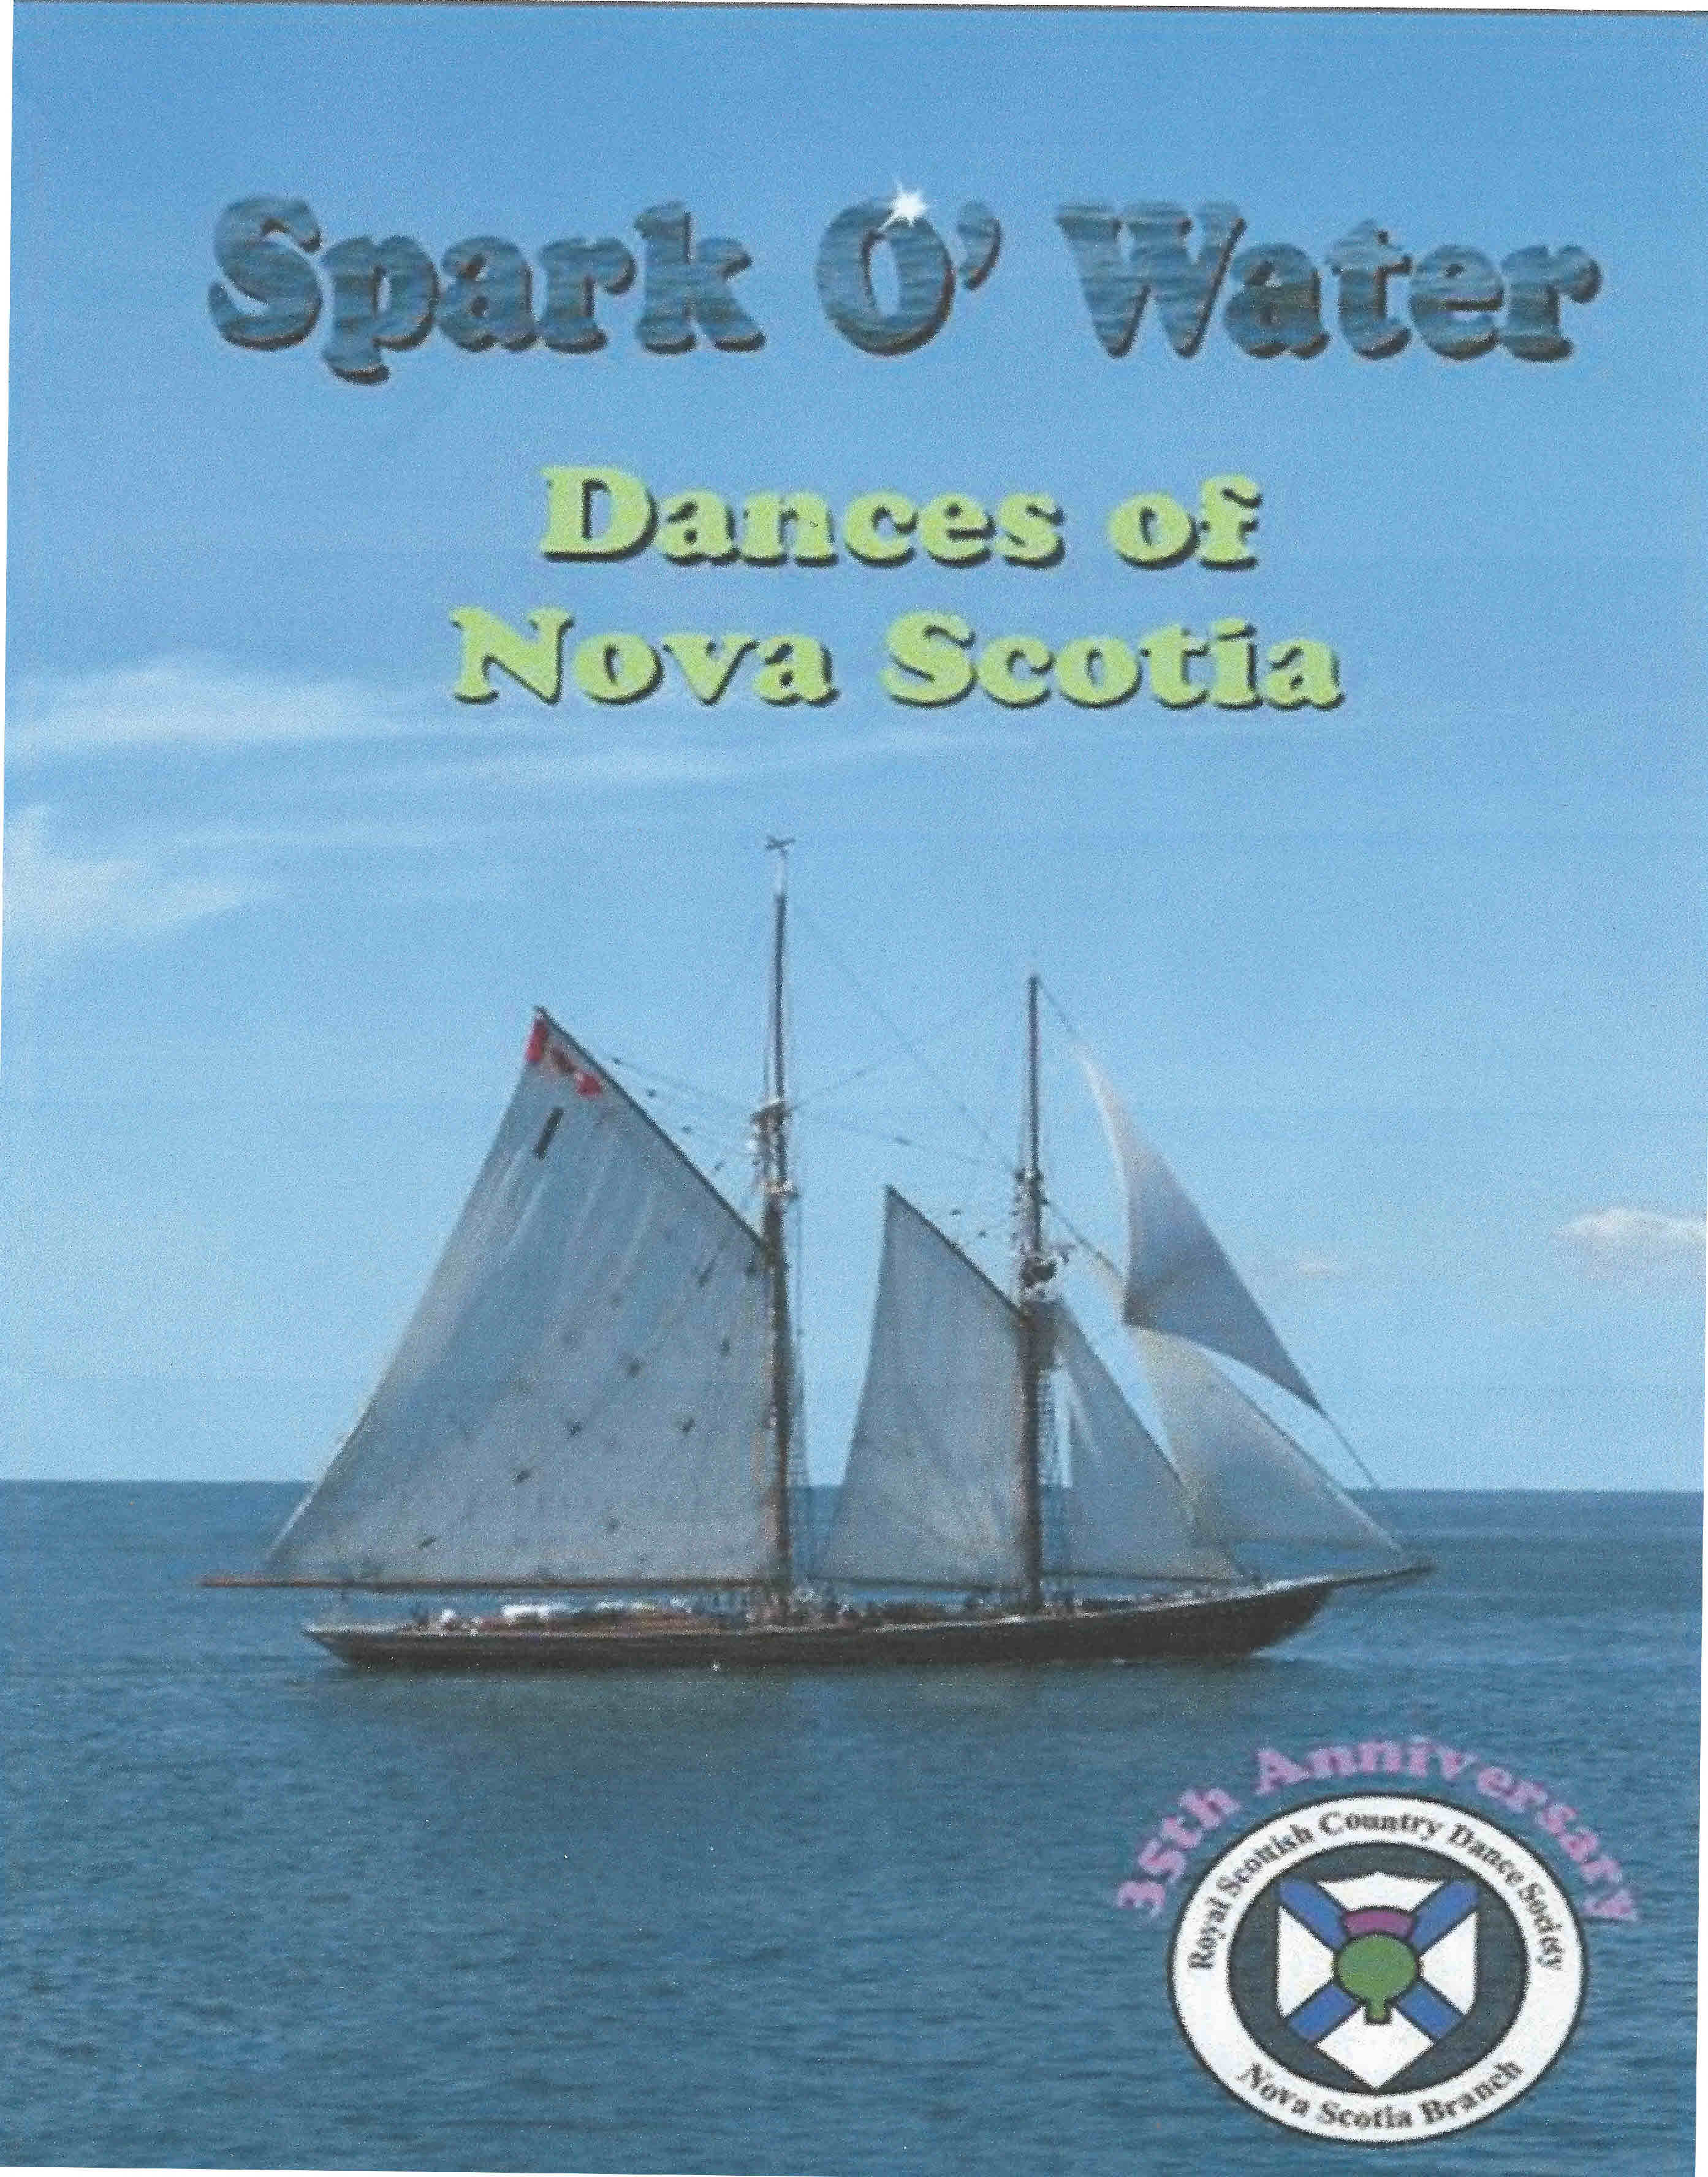 Sparl O' Water